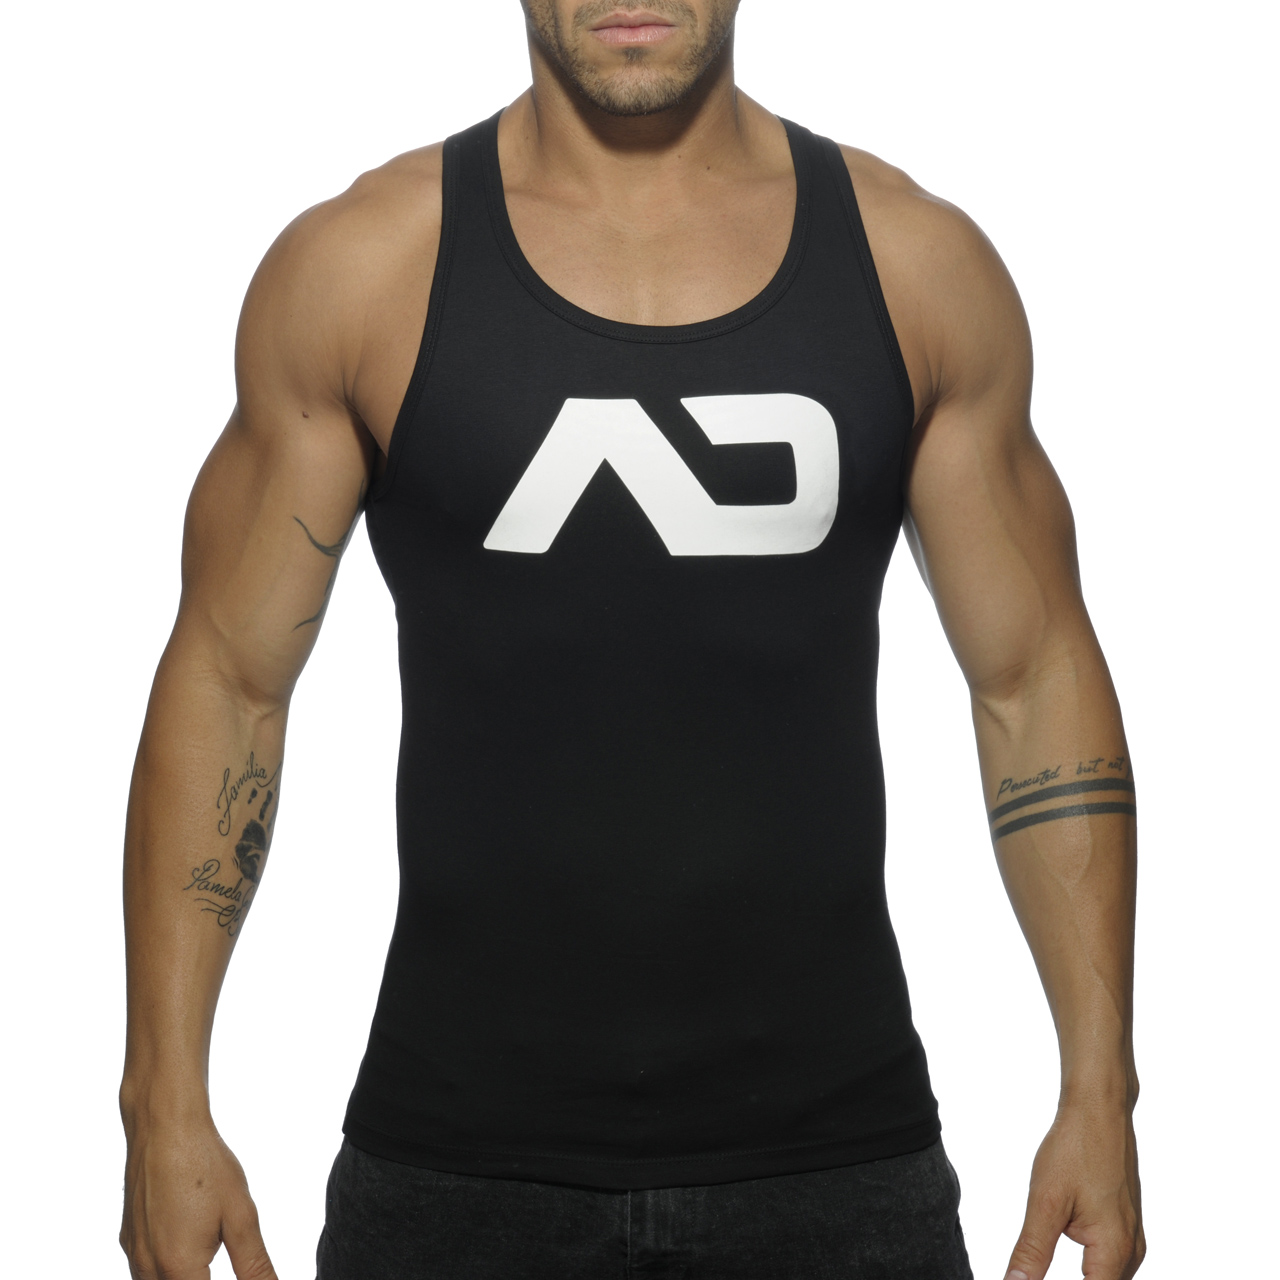 BASIC AD TANK TOP BLACK 10